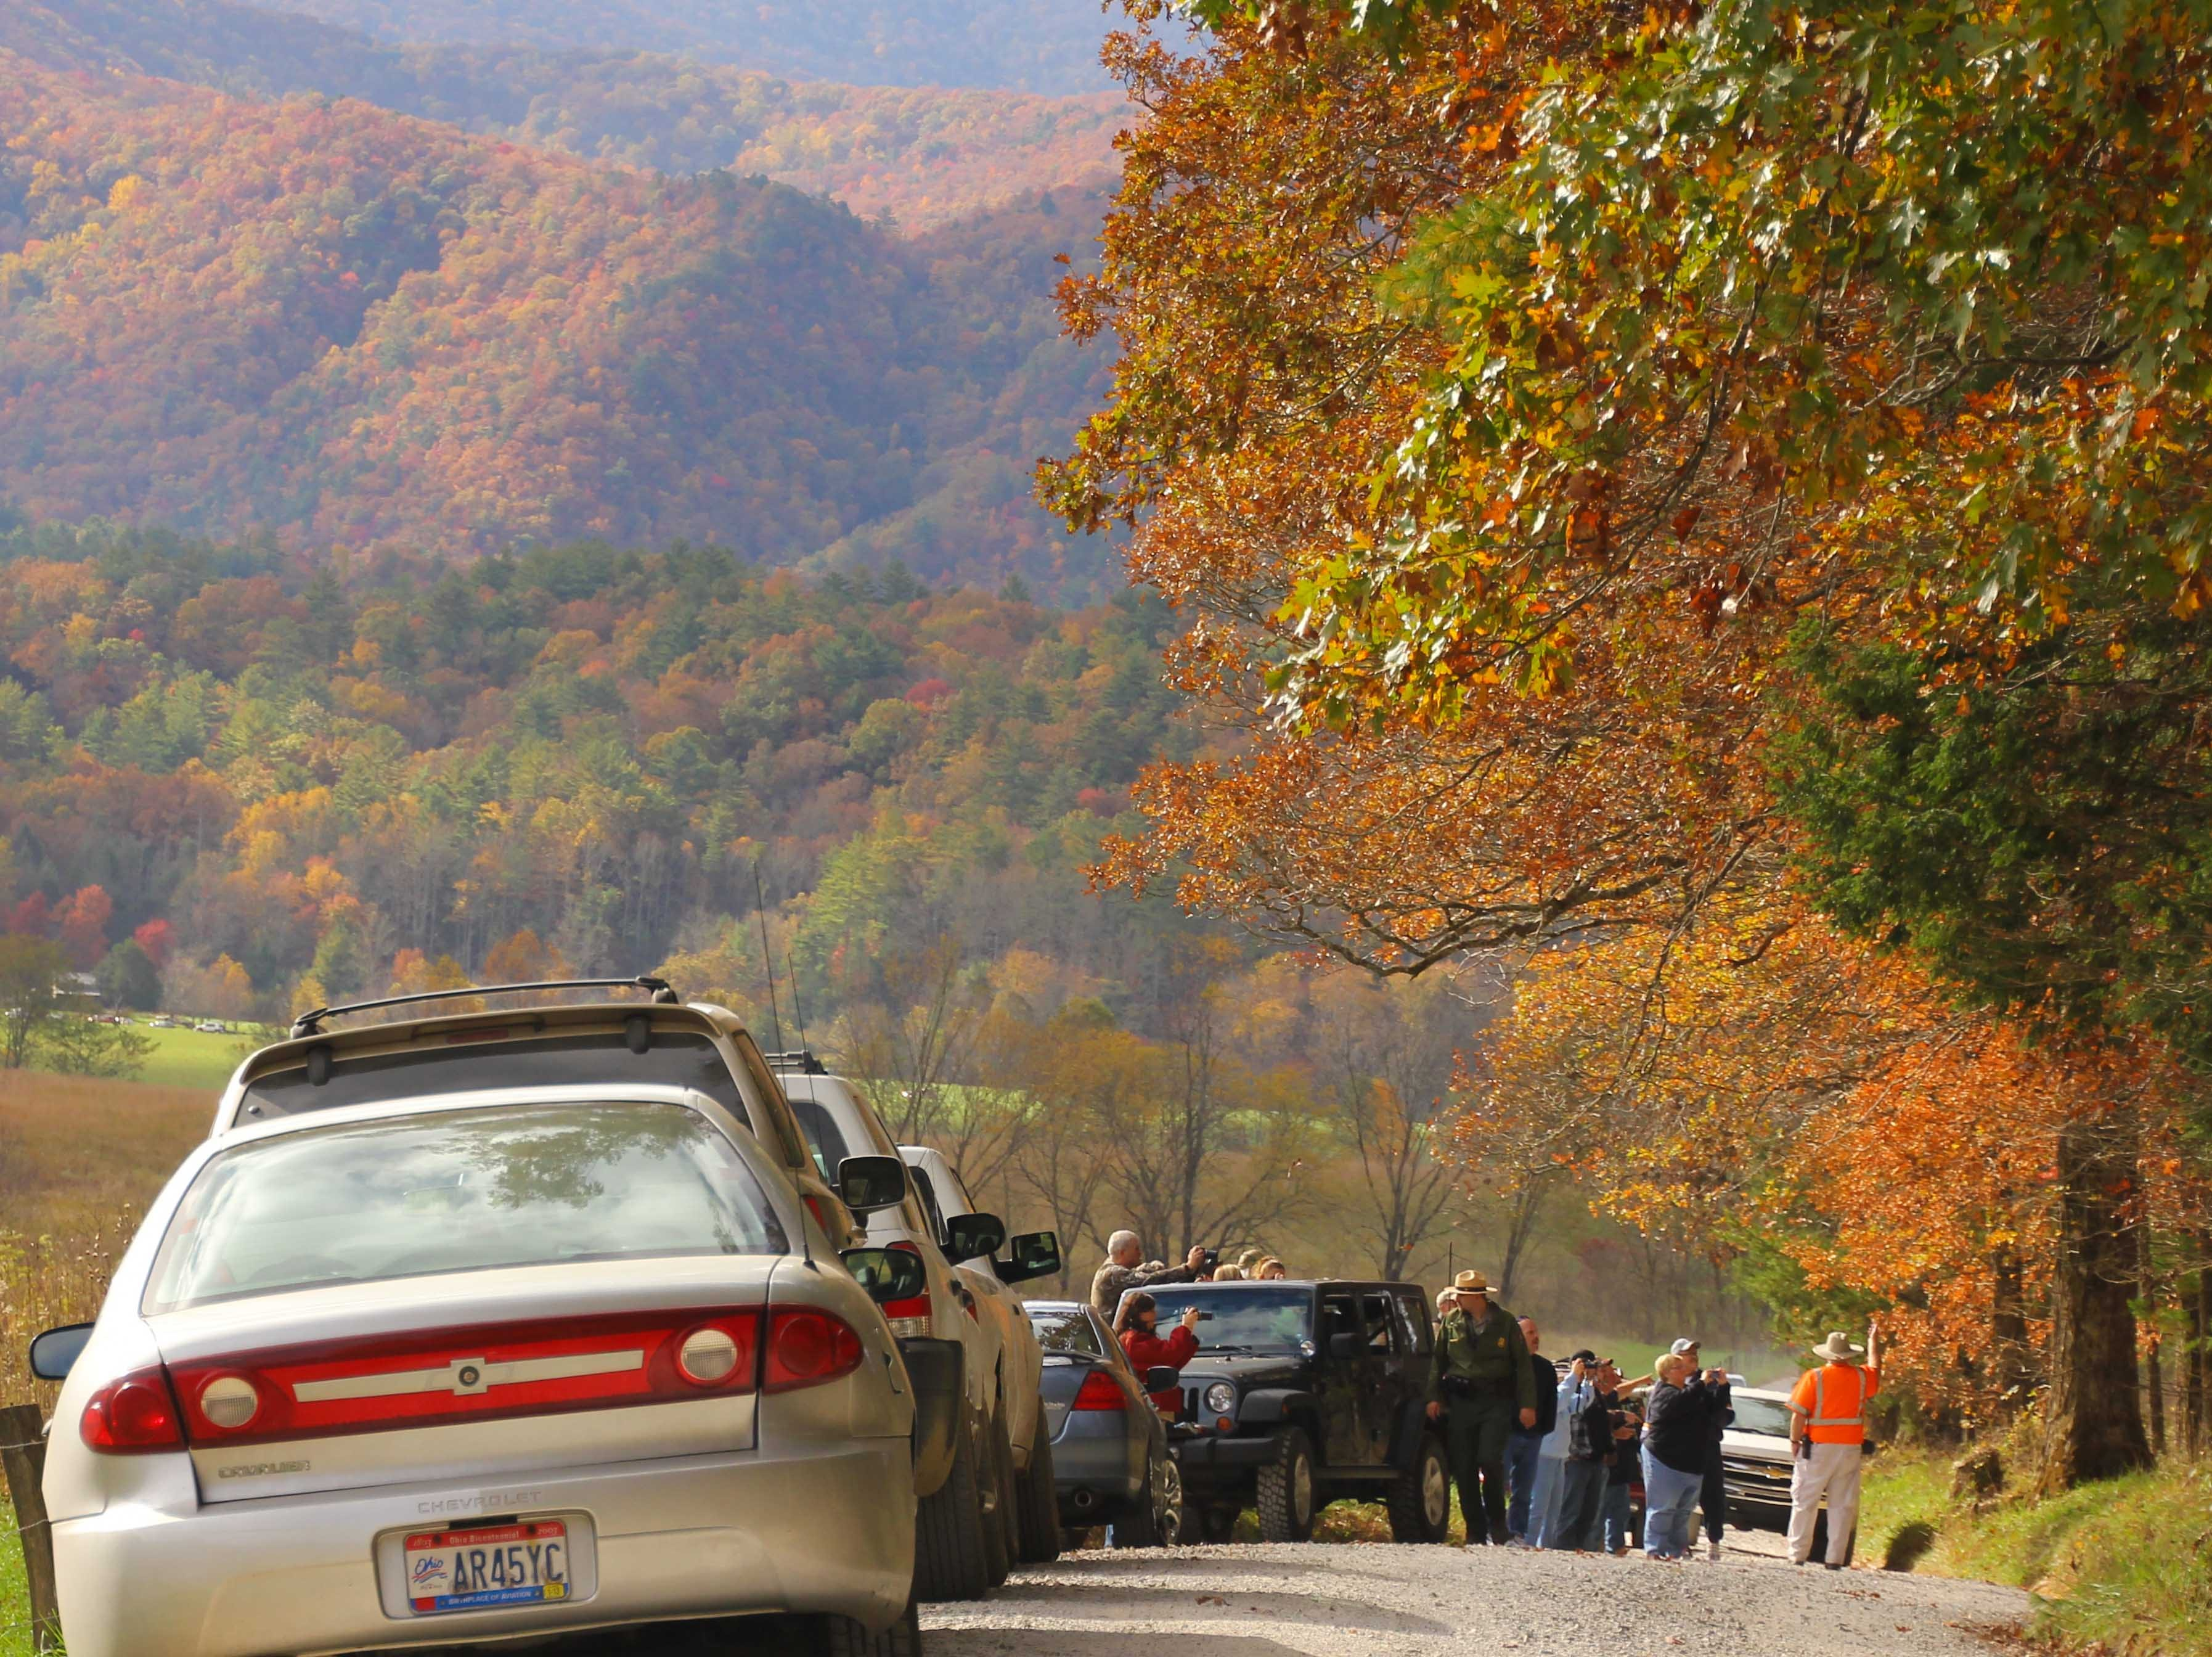 Visitors stop along the road in Cades Cove to view a bear in October 2012 in the Great Smoky Mountains National Park. The park recorded 650,180 vehicles on the Cades Cove Loop in 2012 according to spokeswoman Molly Schroer.  (Warren Bielenberg/Special to the News Sentinel)